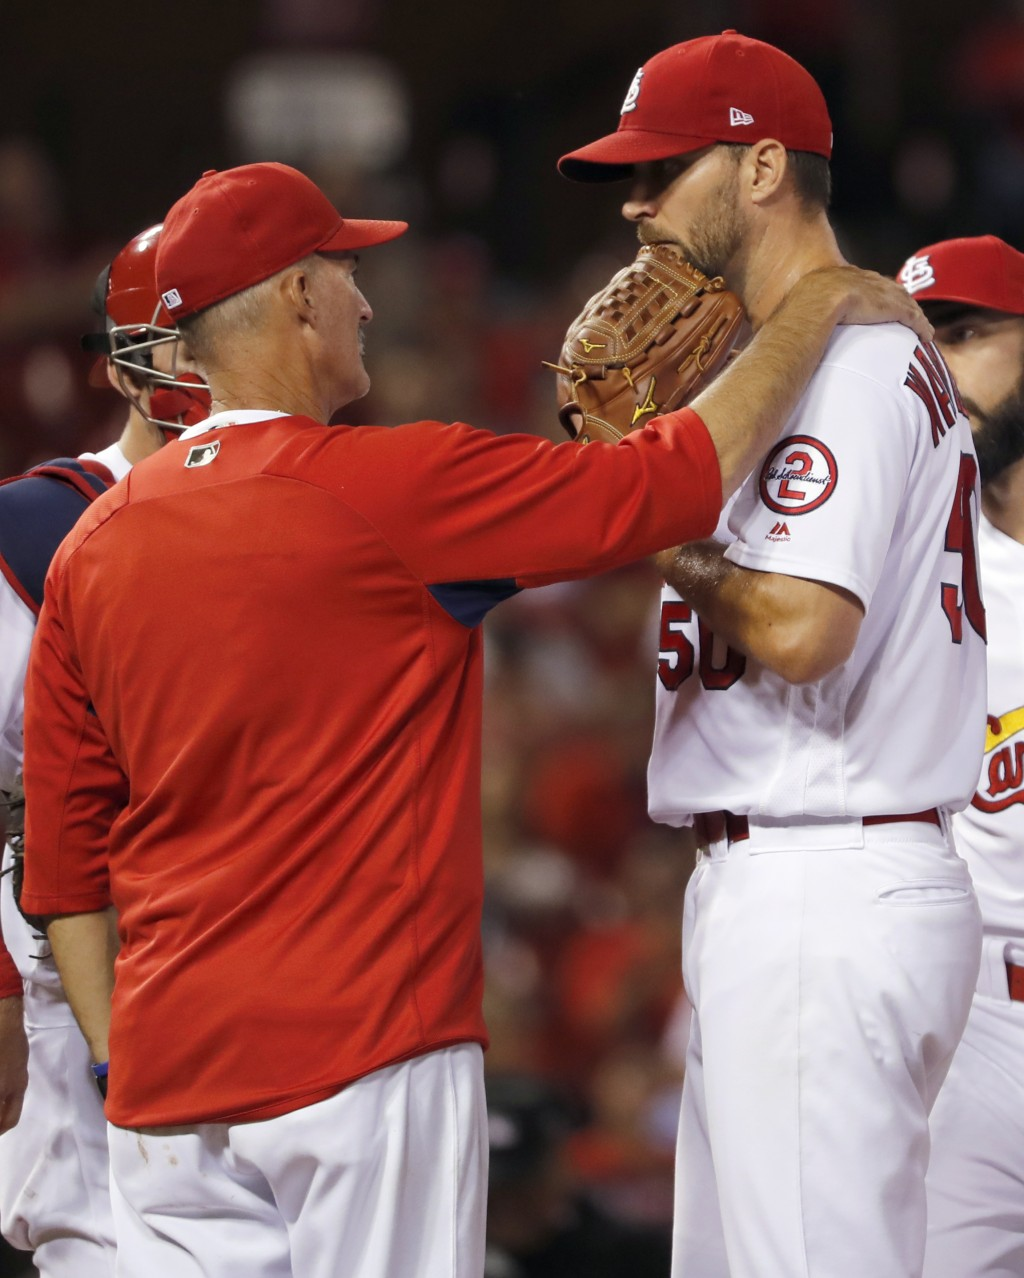 St. Louis Cardinals pitching coach Mike Maddux, left, talks with starting pitcher Adam Wainwright during the third inning of a baseball game against t